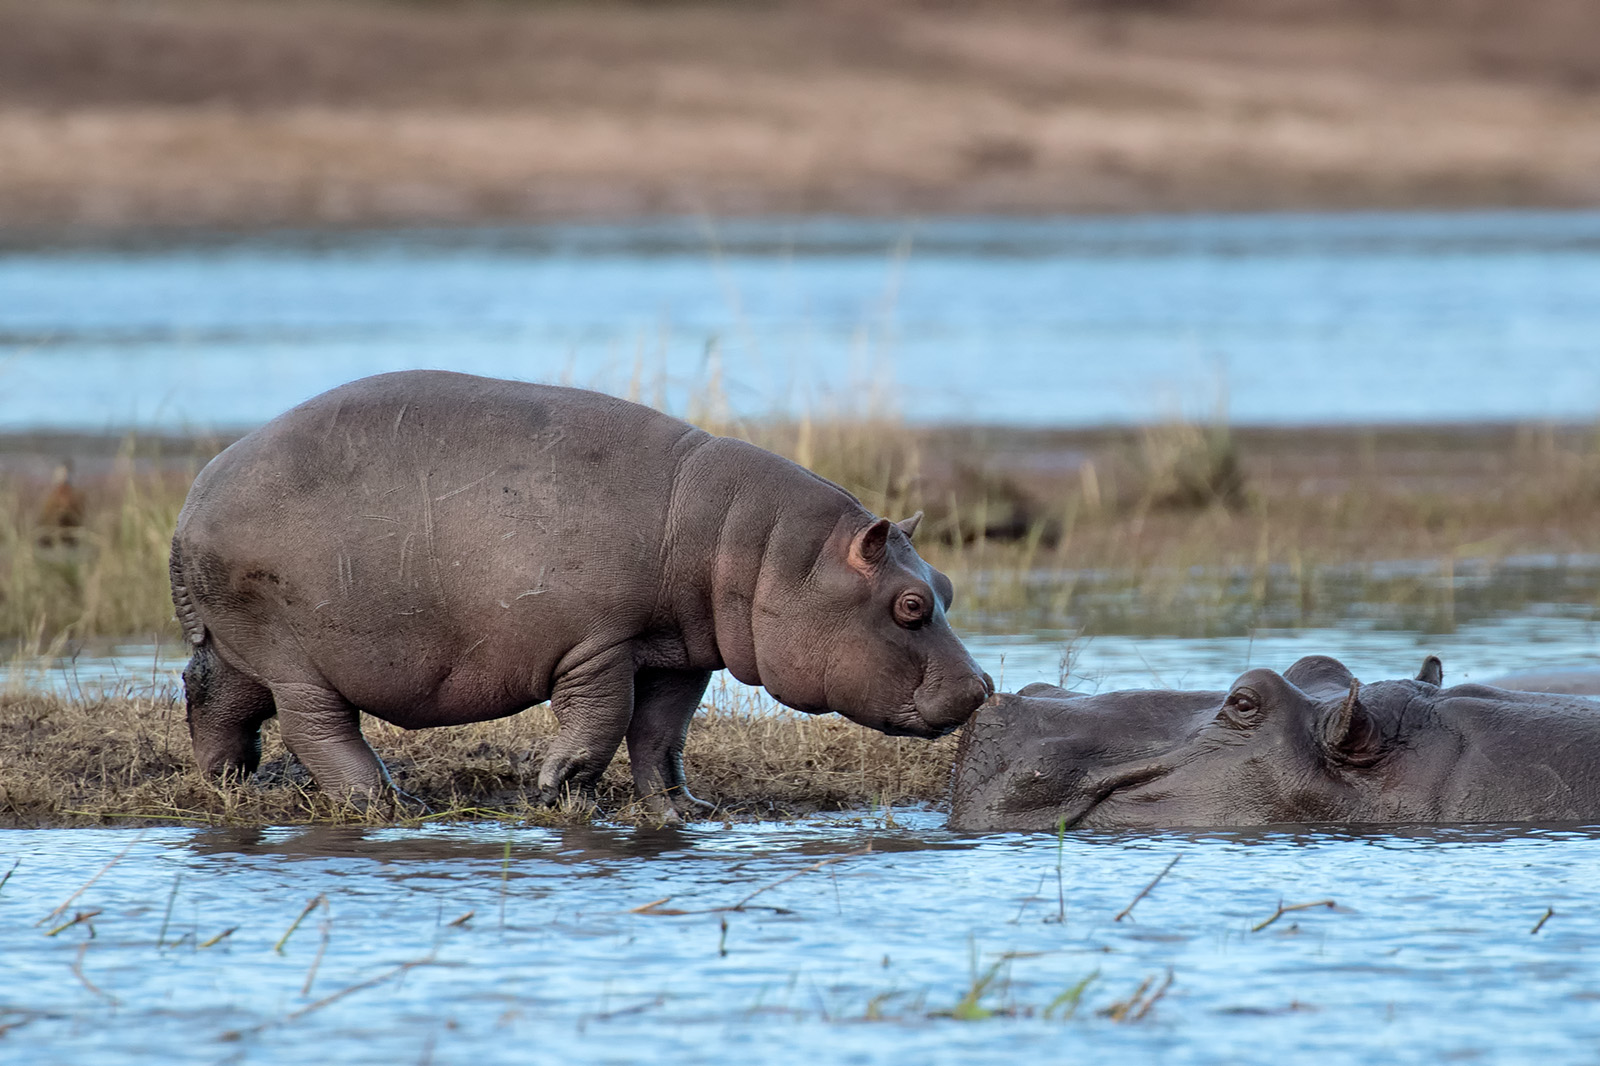 A tender moment with baby hippo and mother - photo take from Photo Boat